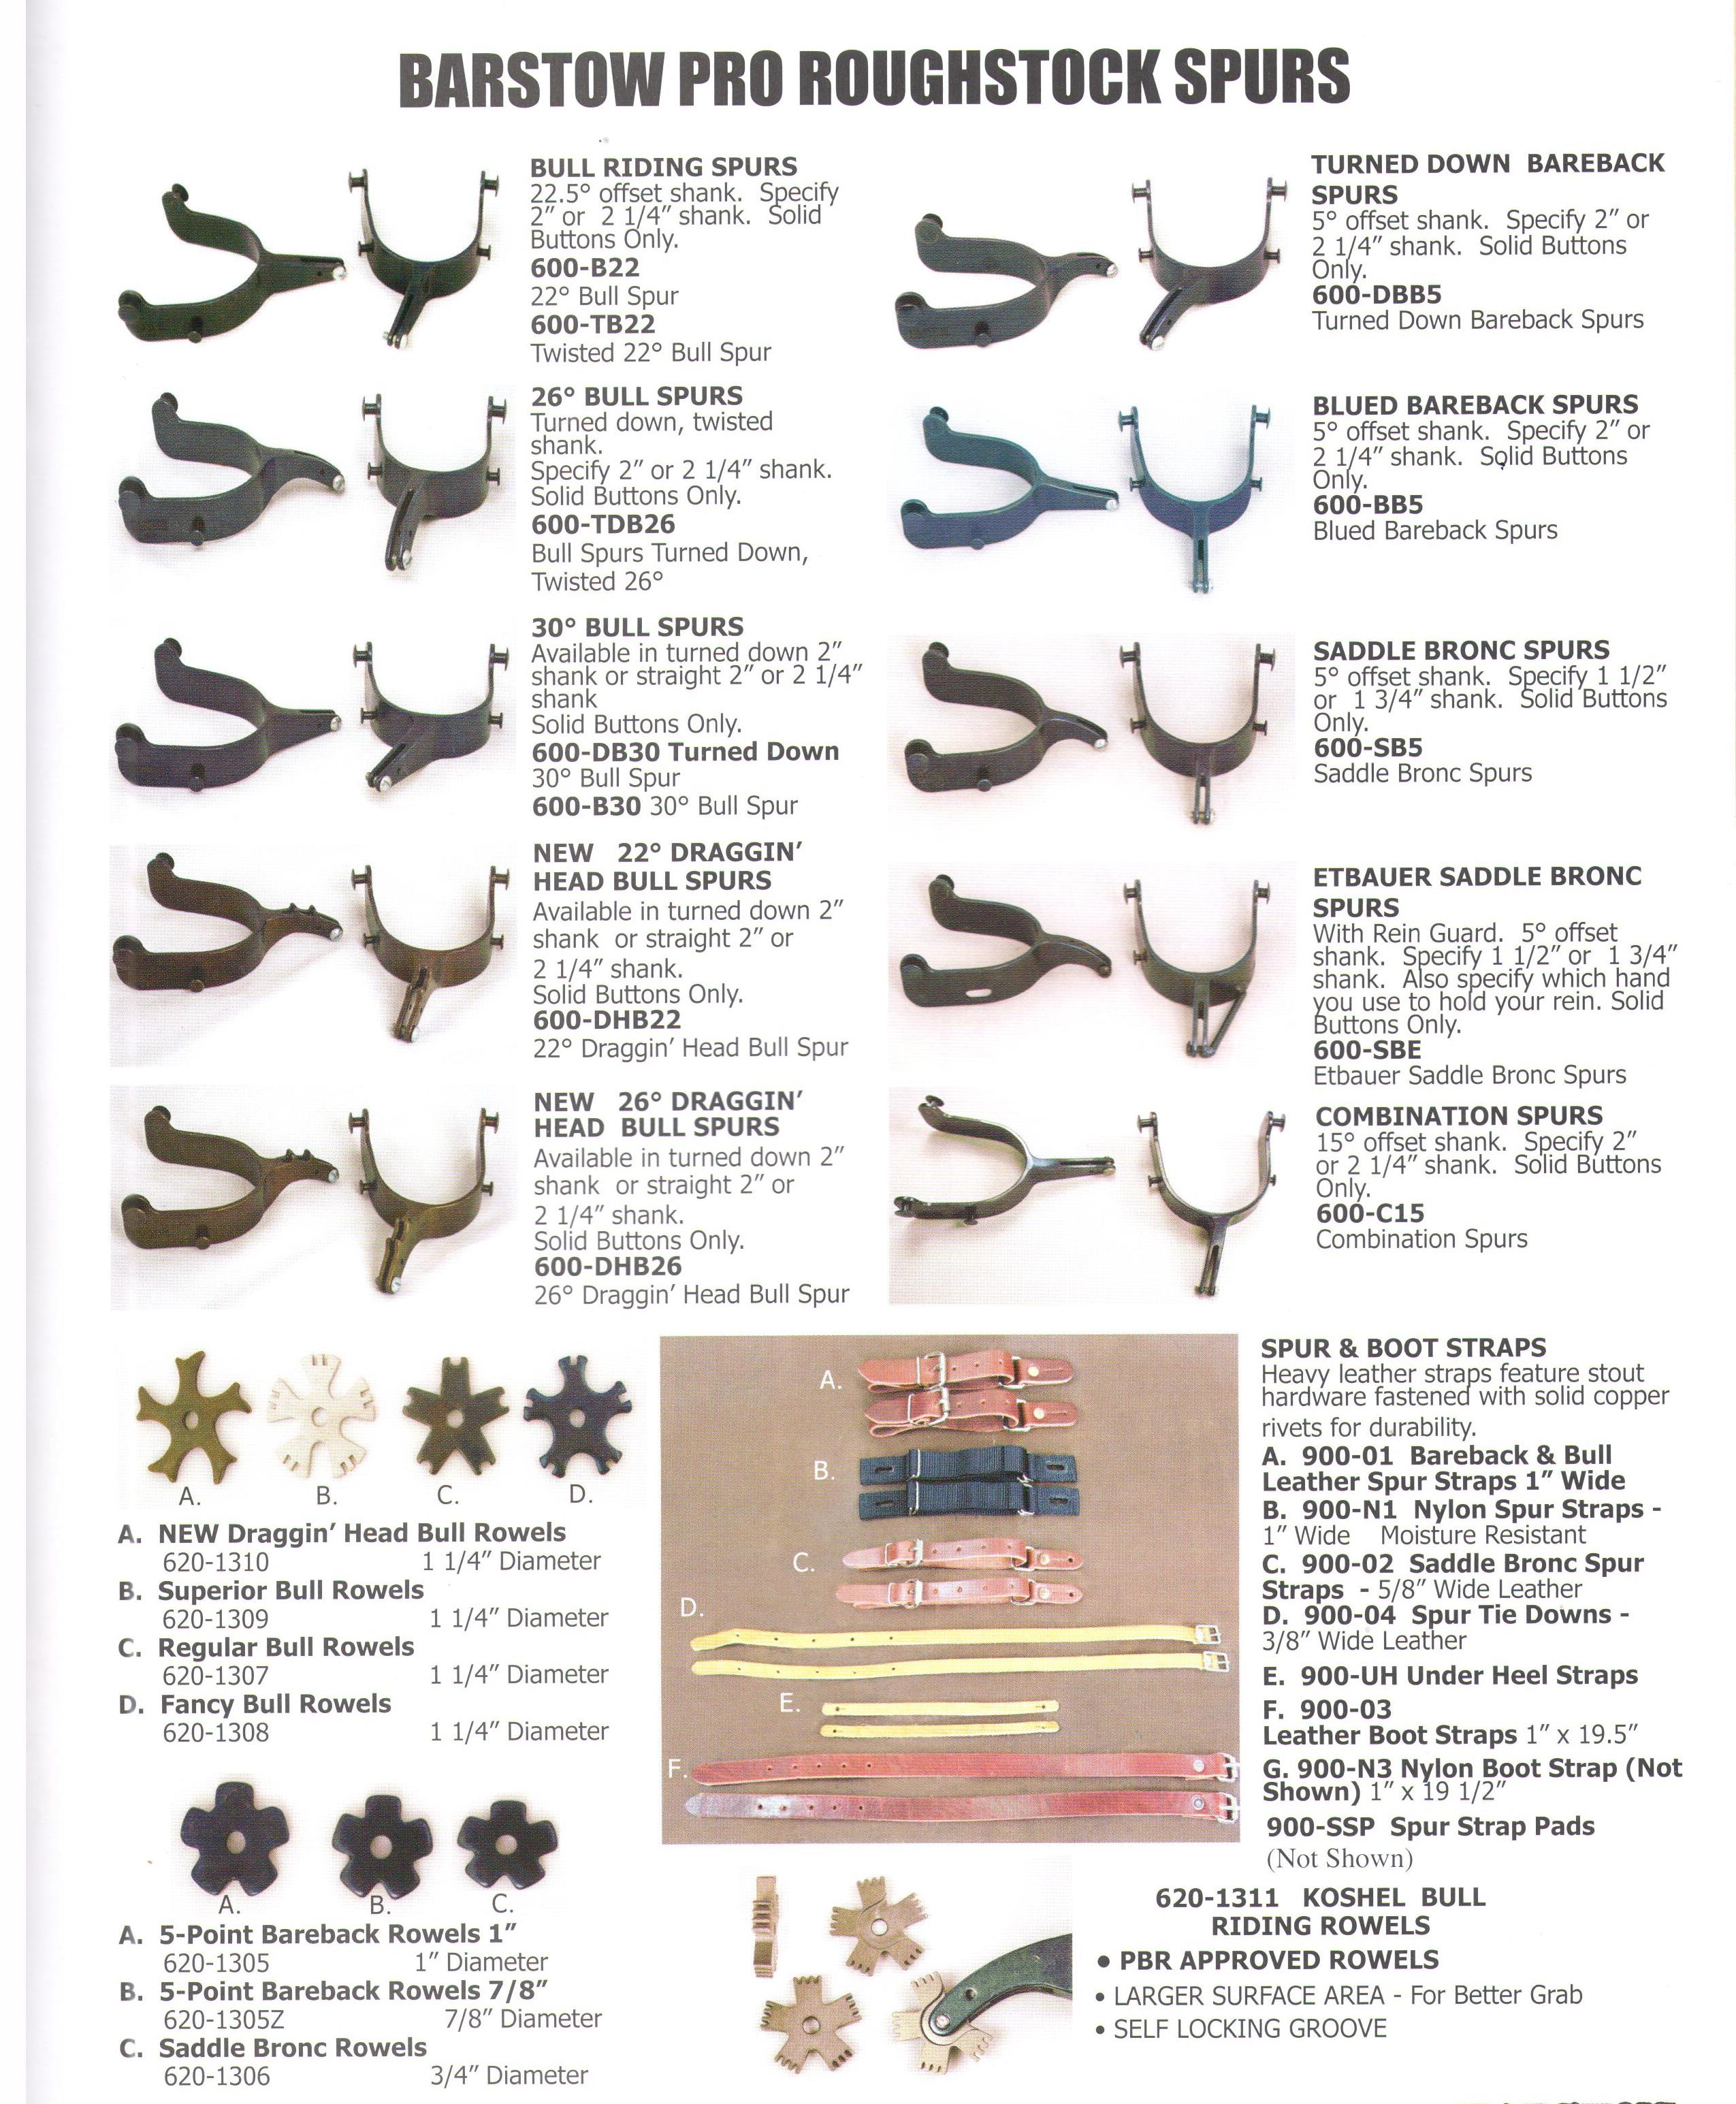 barstow-catalog-page-17-rowels-spurs-in-jpeg.jpg